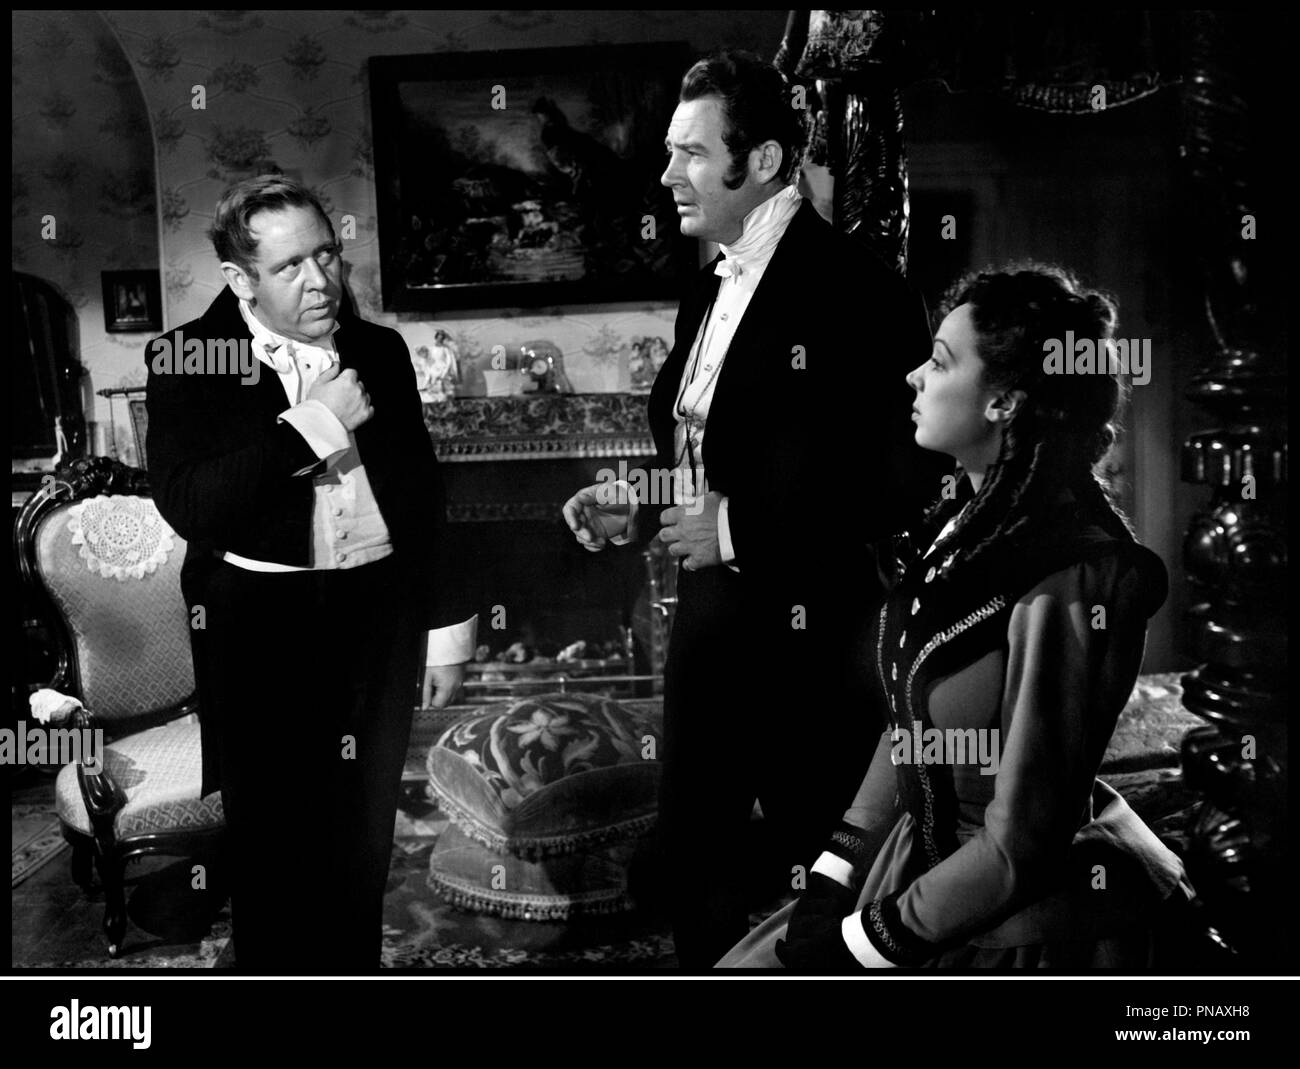 Prod DB © RKO / DR FOREVER AND A DAY (FOREVER AND A DAY) film a sketches de Rene Clair, Edmund Goulding, Cedric Hardwicke, Frank Lloyd, Victor Saville, Robert Stevenson et Herbert Wilcox 1943 USA avec Charles Laughton, Ian Hunter et Ida Lupino - Stock Image